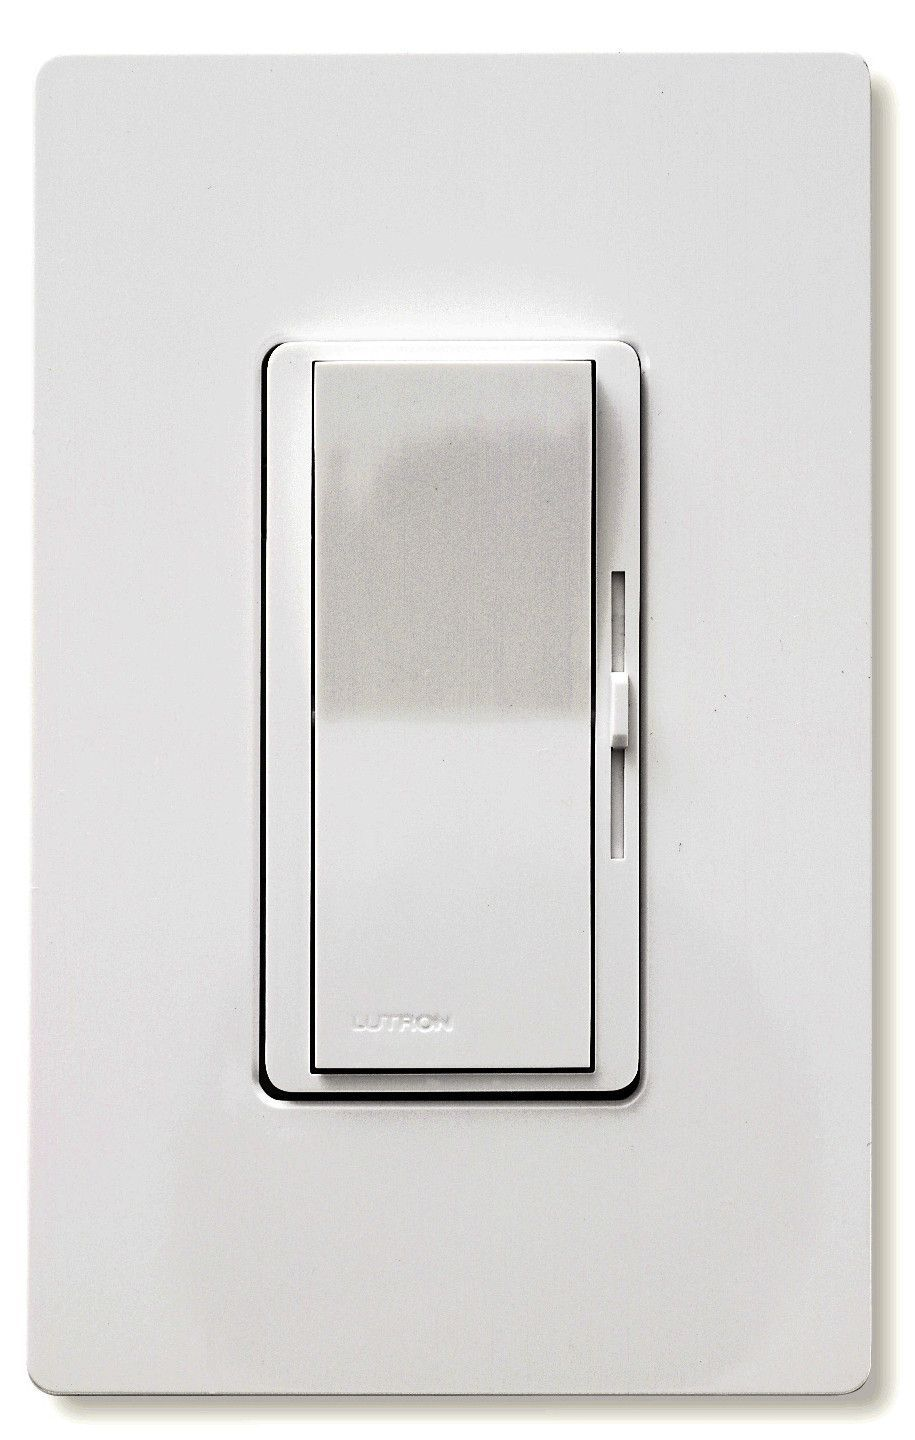 Diva Duo Halogen/Incandescent Dimmer Light dimmer switch